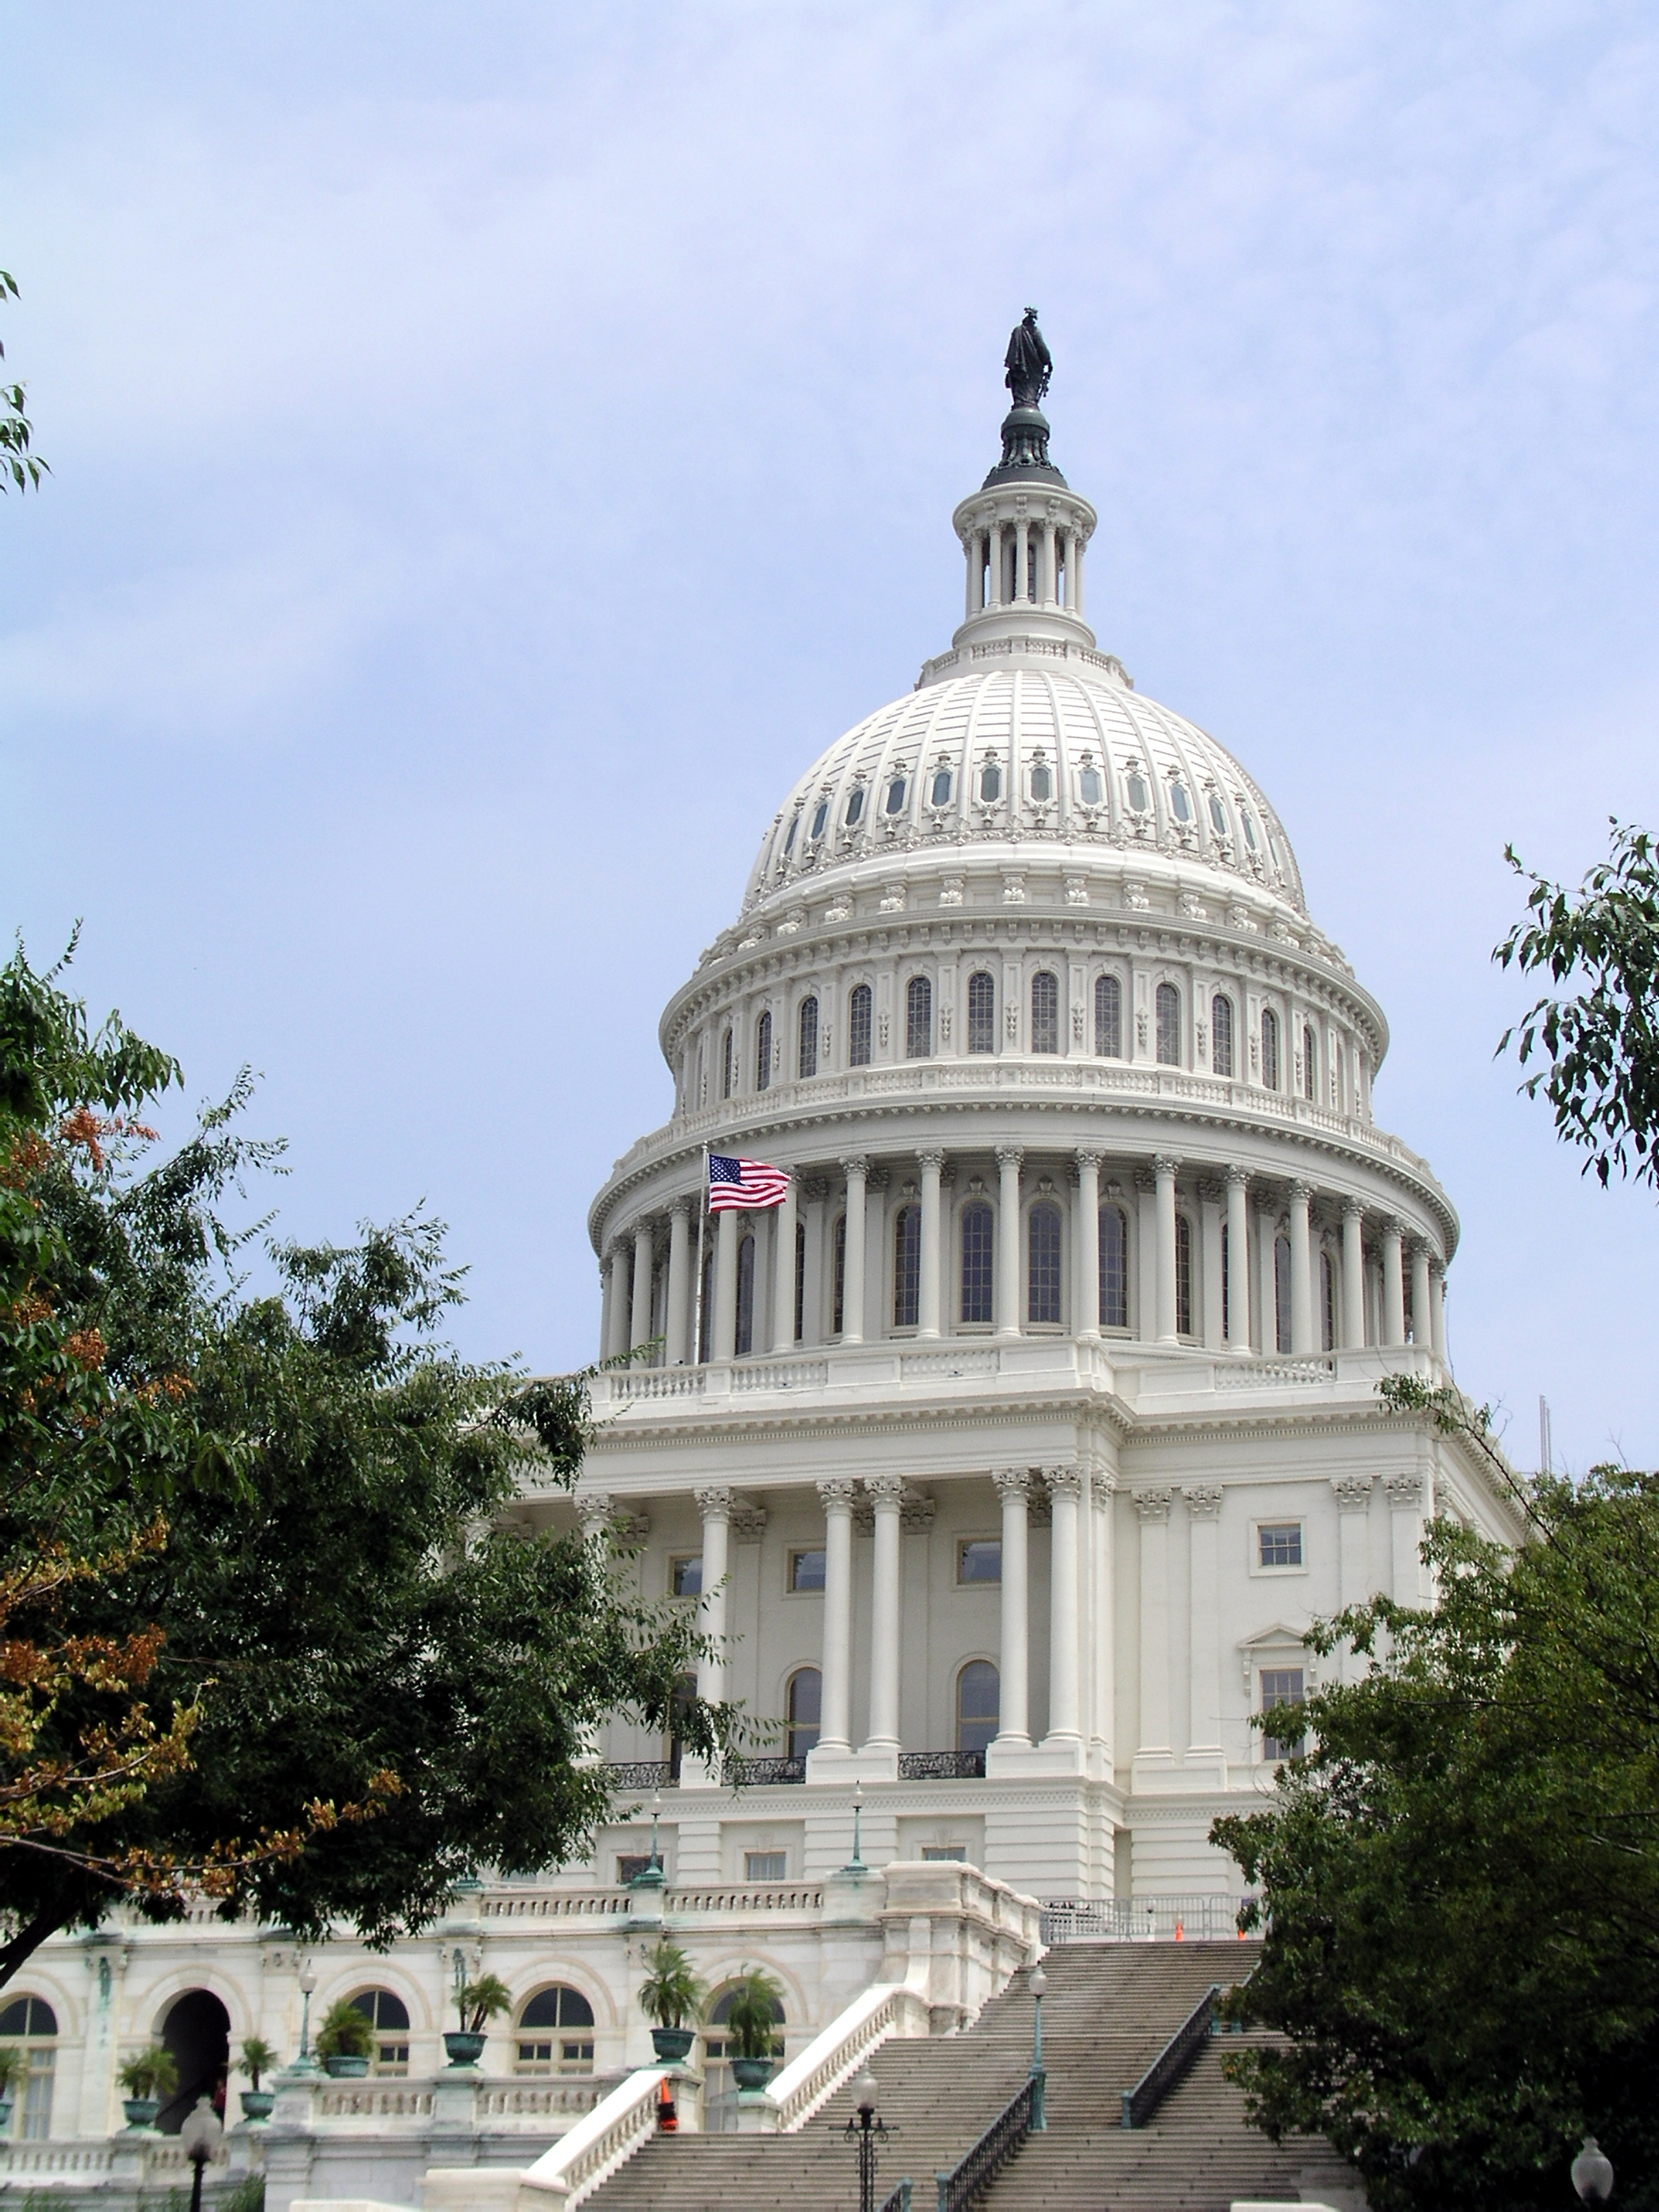 A study's results suggest the Any Willing Pharmacy bill (HR 793) would hinder access to lower-cost pharmacies and boost Medicare spending.